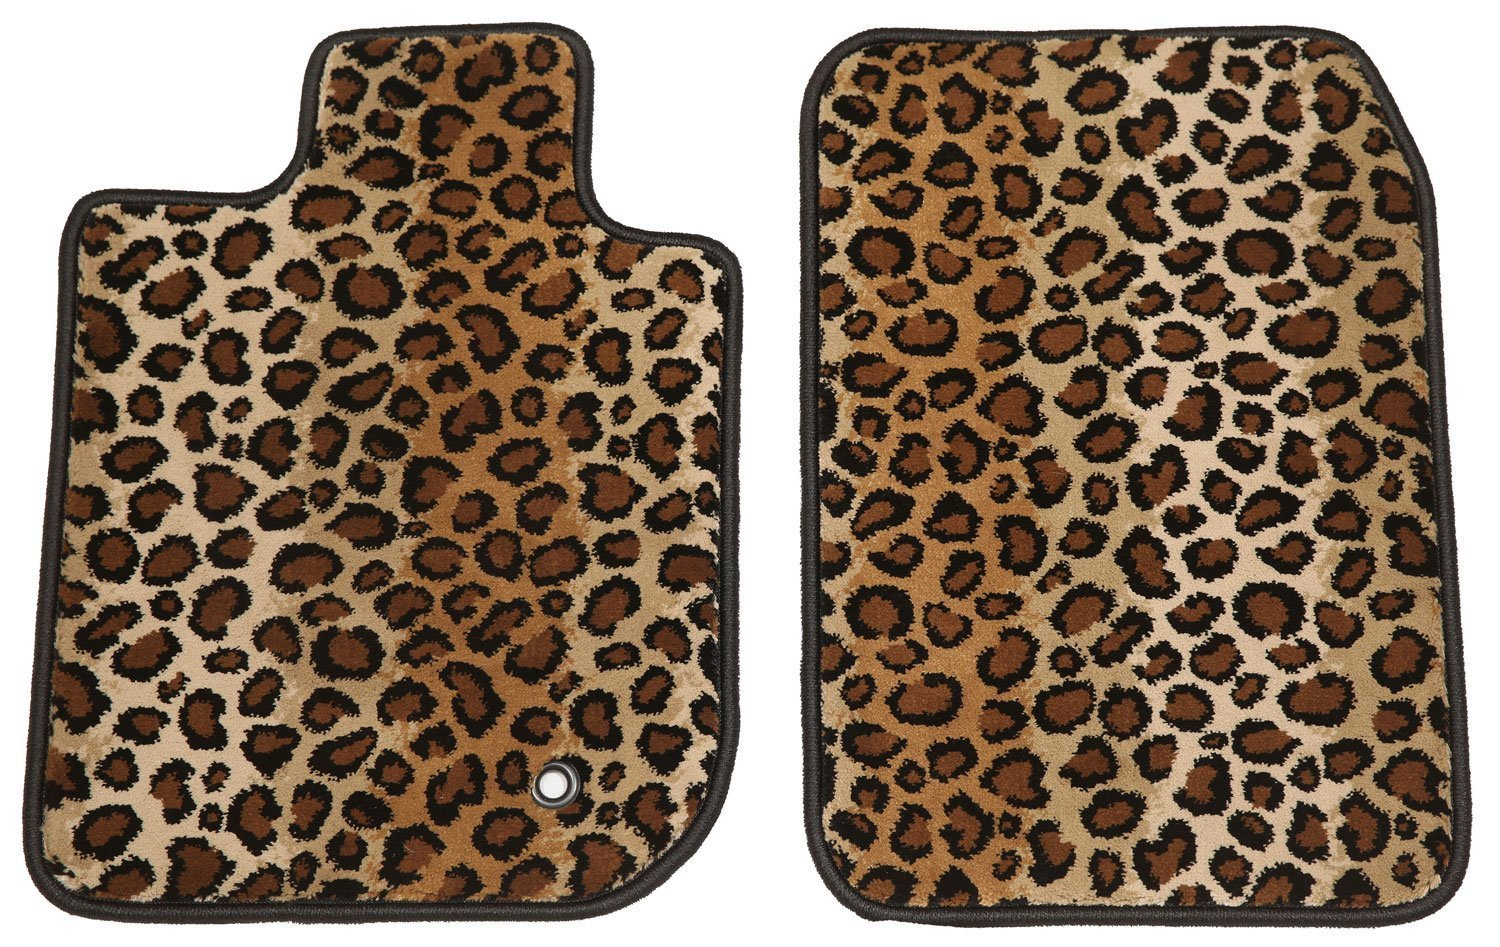 1960 BMW Isetta Leopard Driver /& Passenger 1959 GGBAILEY D60046-F1B-LP Custom Fit Automotive Carpet Floor Mats for 1958